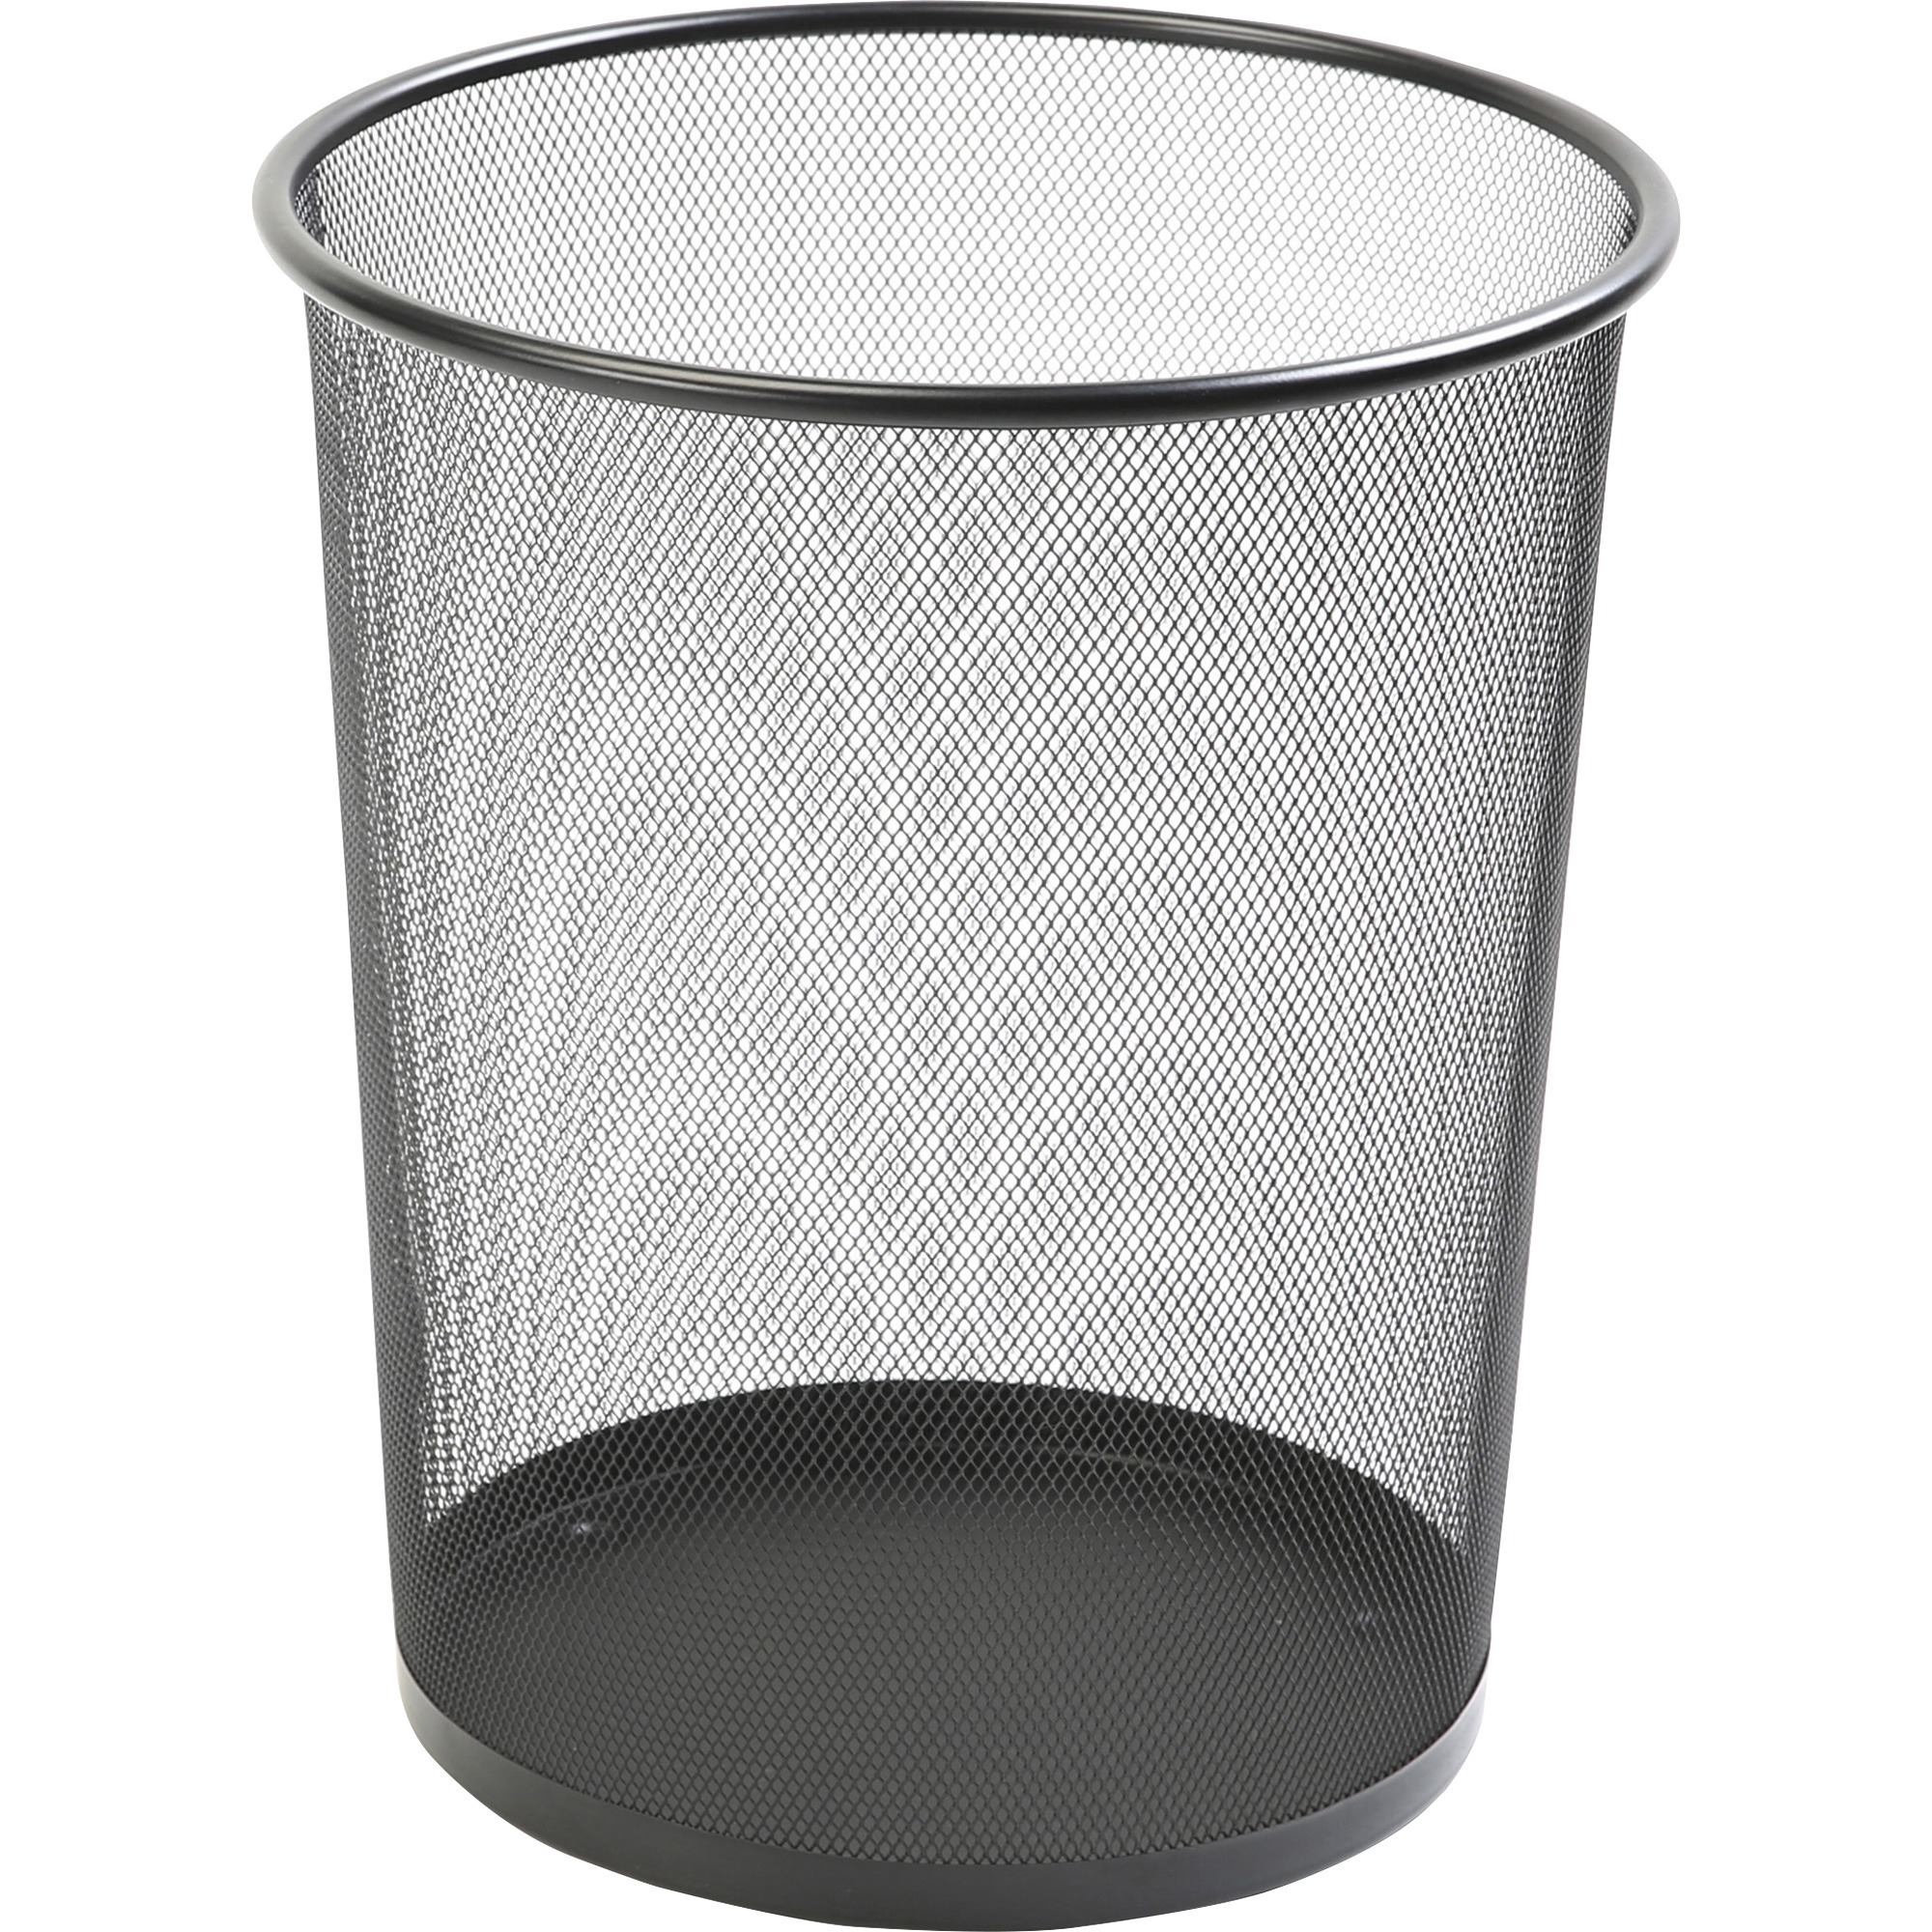 Black Metal Trash Can Lorell Black Mesh Round Waste Bin Madill The Office